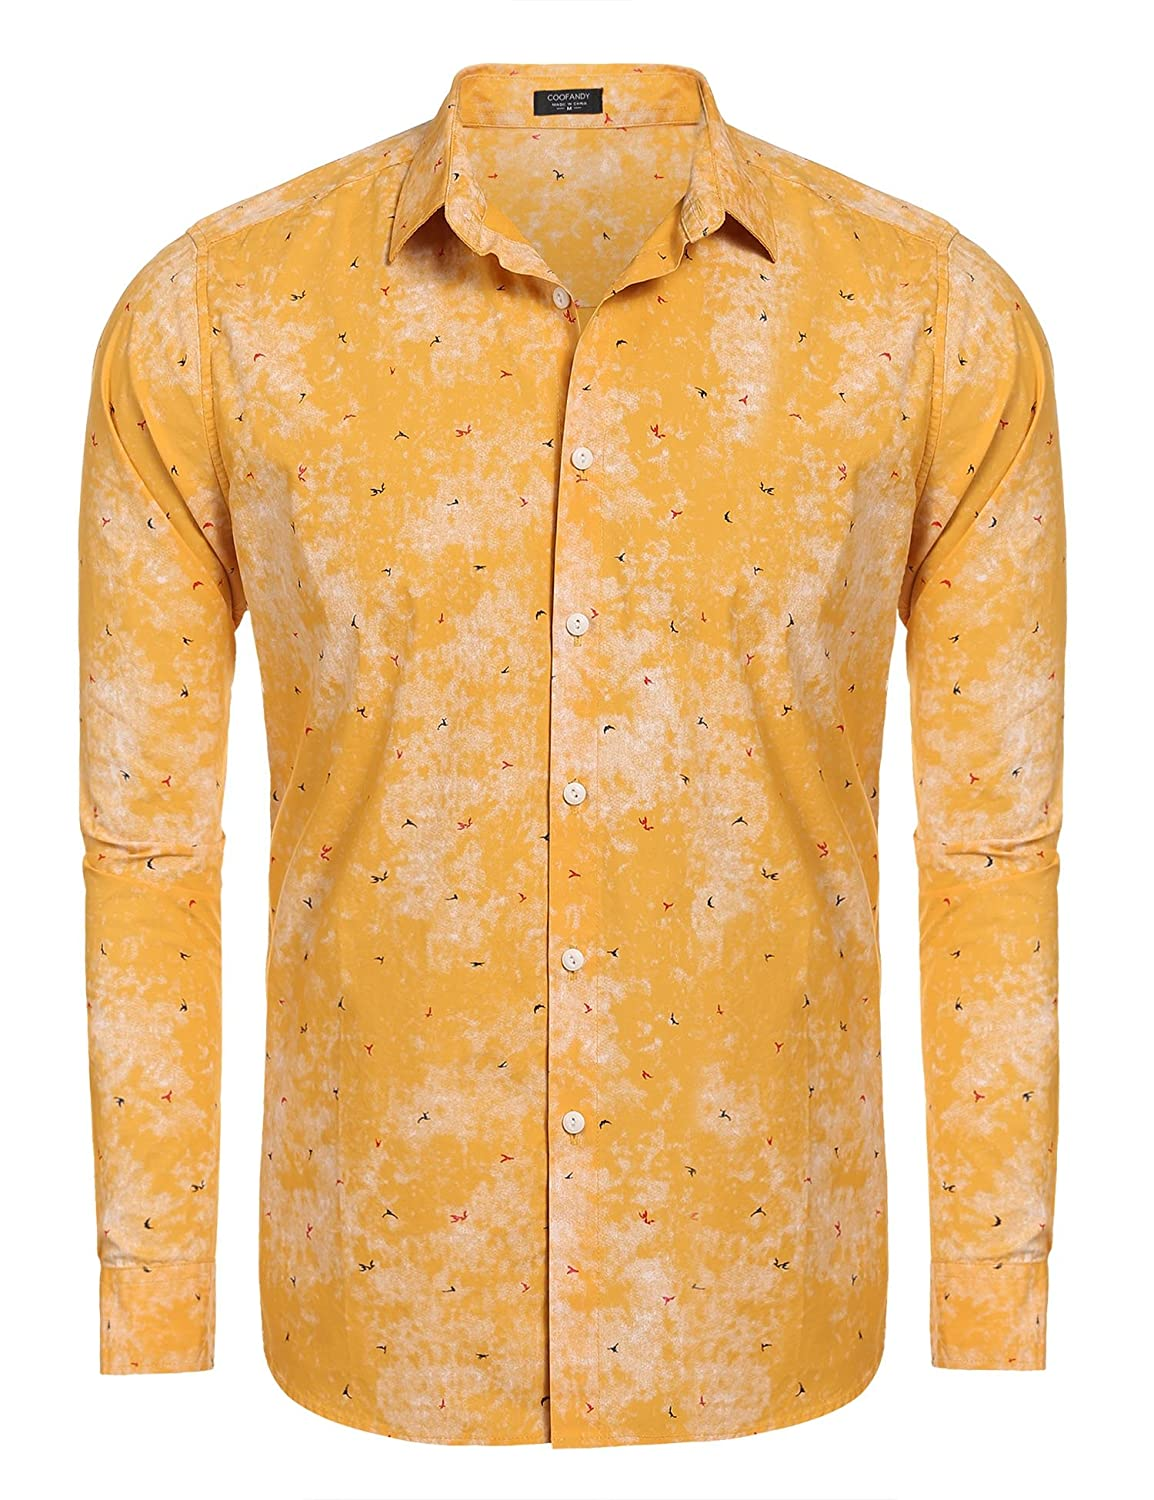 Men's Vintage Style Shirts Coofandy Mens Fashion Print Casual Long Sleeve Button Down Shirt $25.12 AT vintagedancer.com